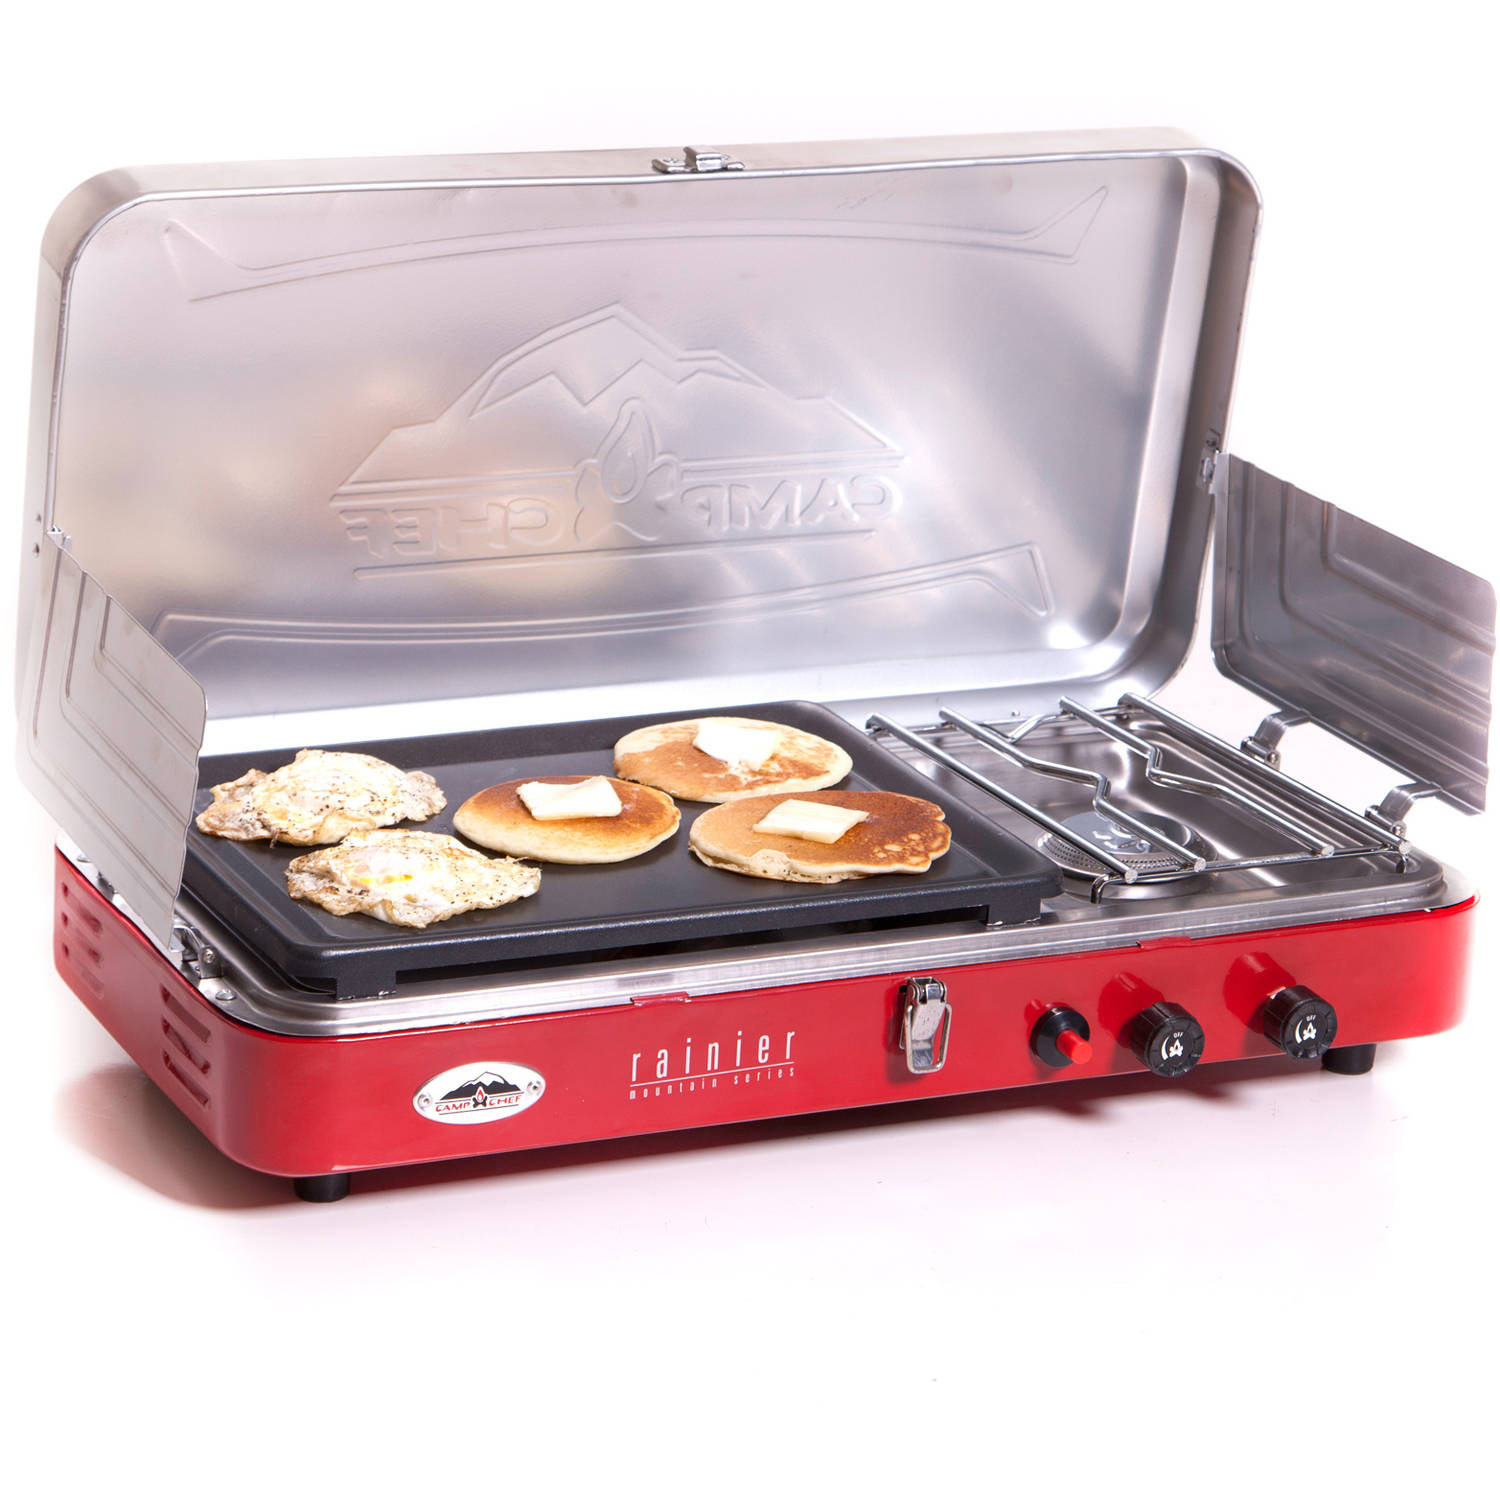 Camp Chef Rainier 2-Burner Stove with Griddle, Red, Red